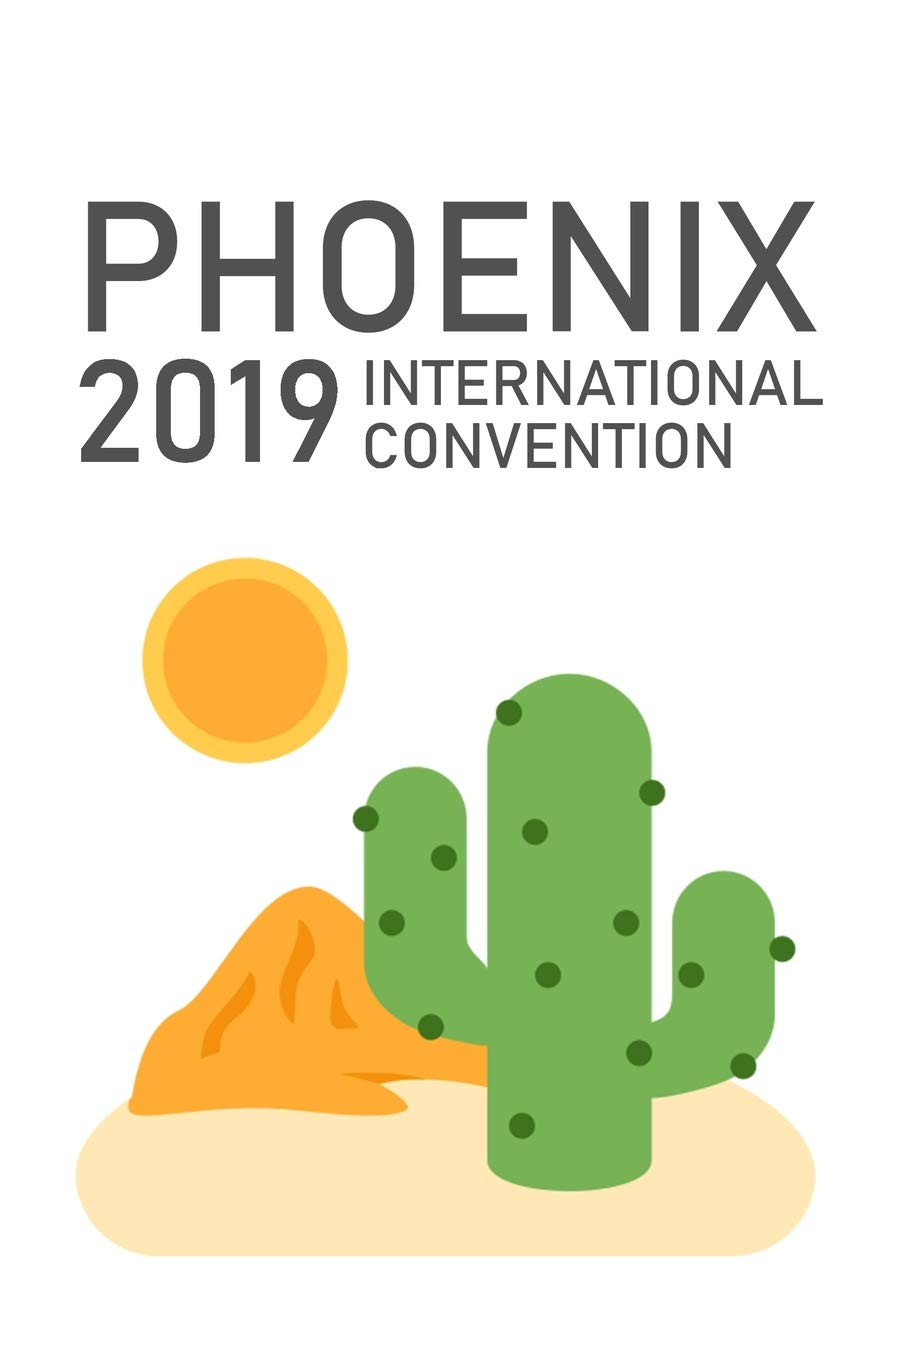 Phoenix 2019 International Convention: JW Gifts International